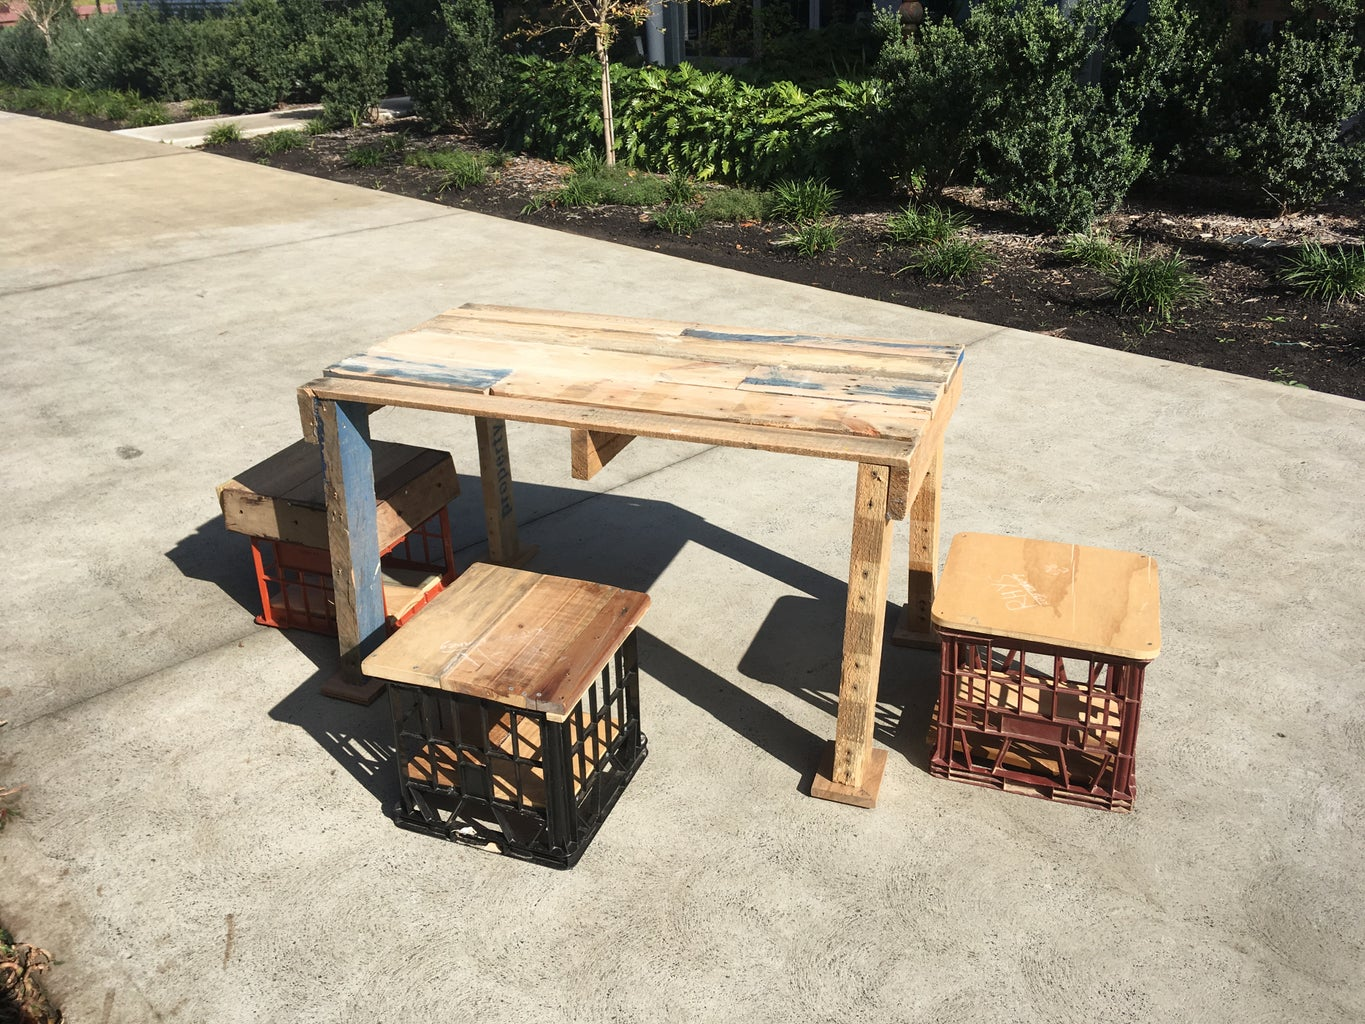 Upcycled Table and Chair Set